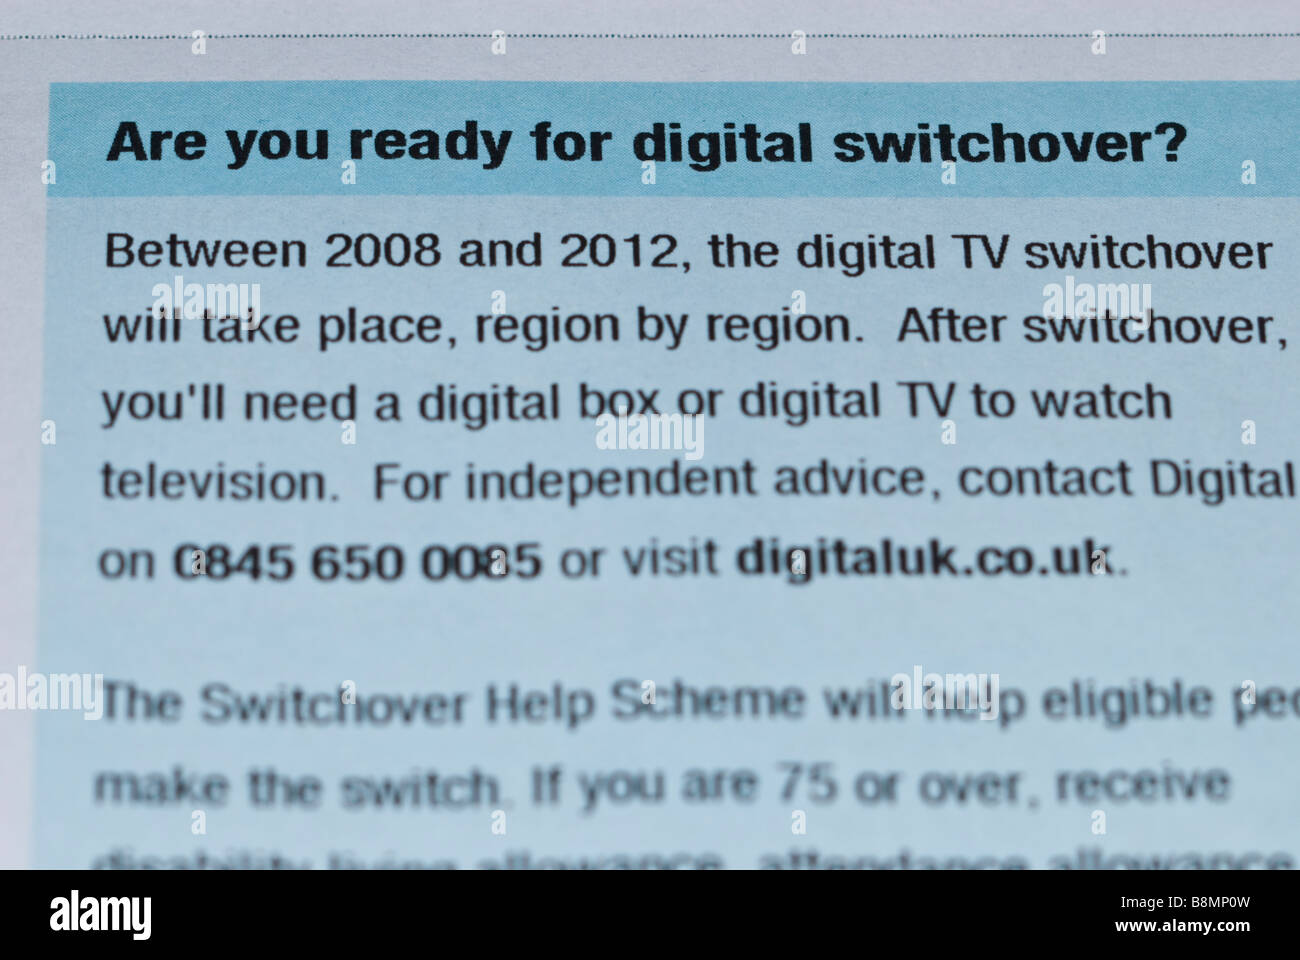 A close up of a uk tv television licence stating...Are you ready for digital switchover when you'll need a box - Stock Image